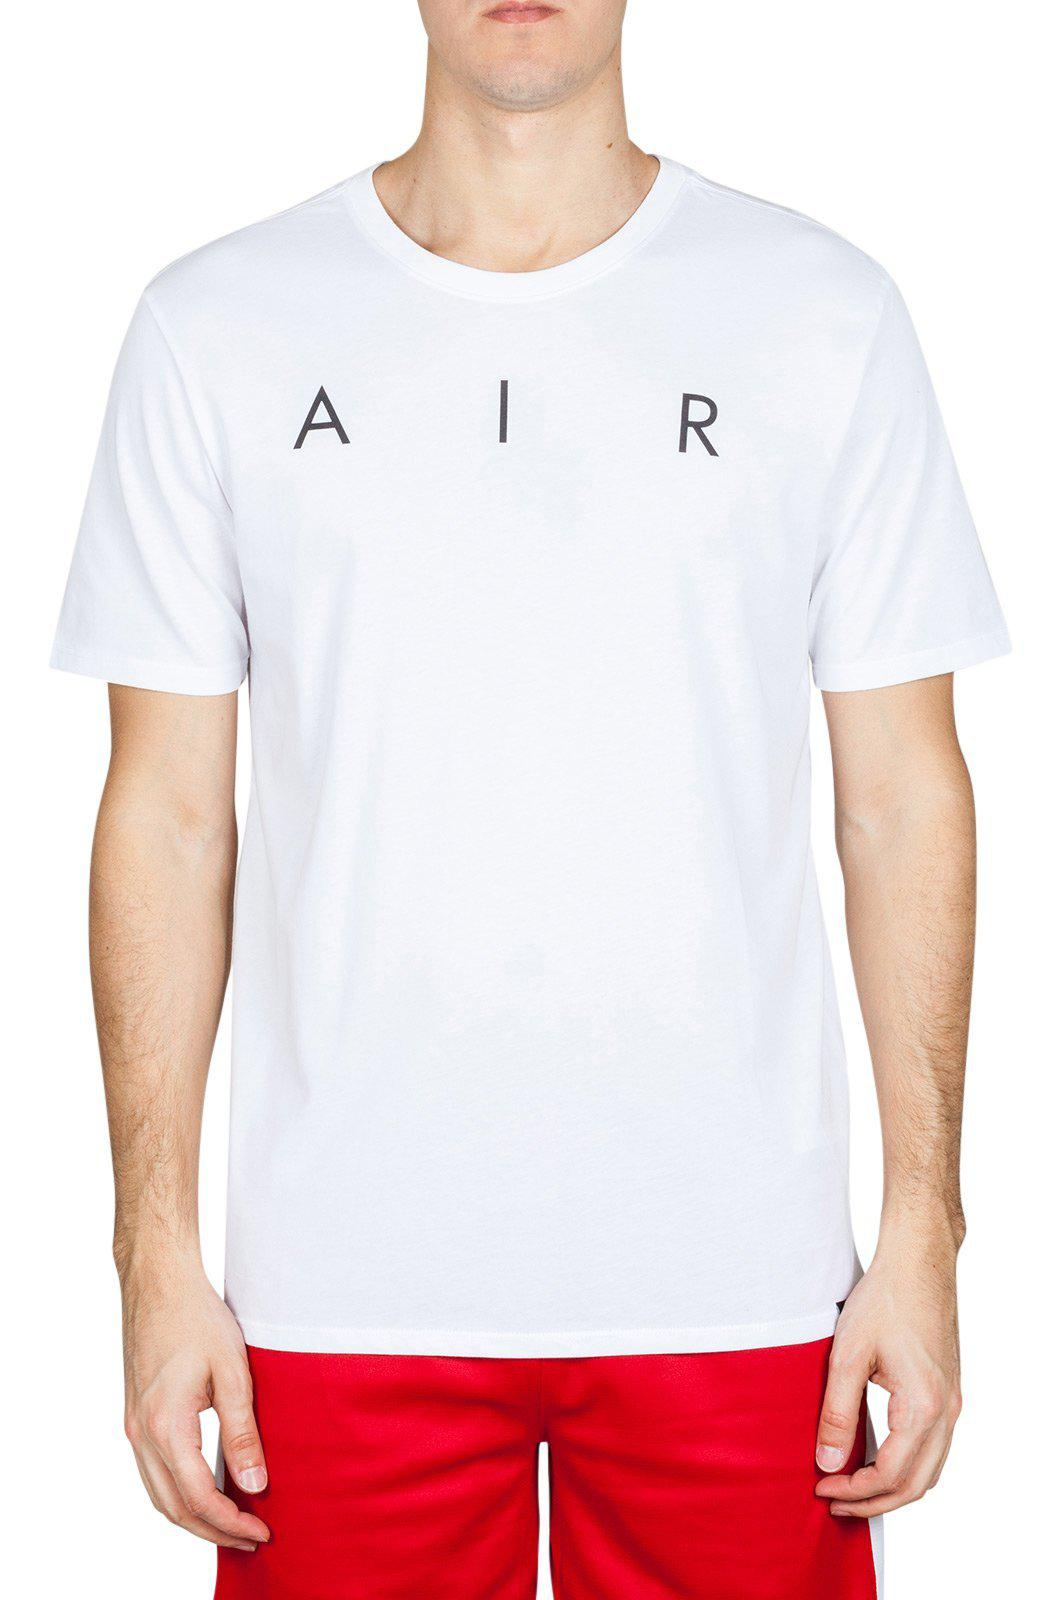 Mens Rise Basketball Photo Tee T-Shirt Nike Outlet Lowest Price Online Cheap Online Outlet Manchester Buy Cheap Shop For Sale Online Store 2MTbG